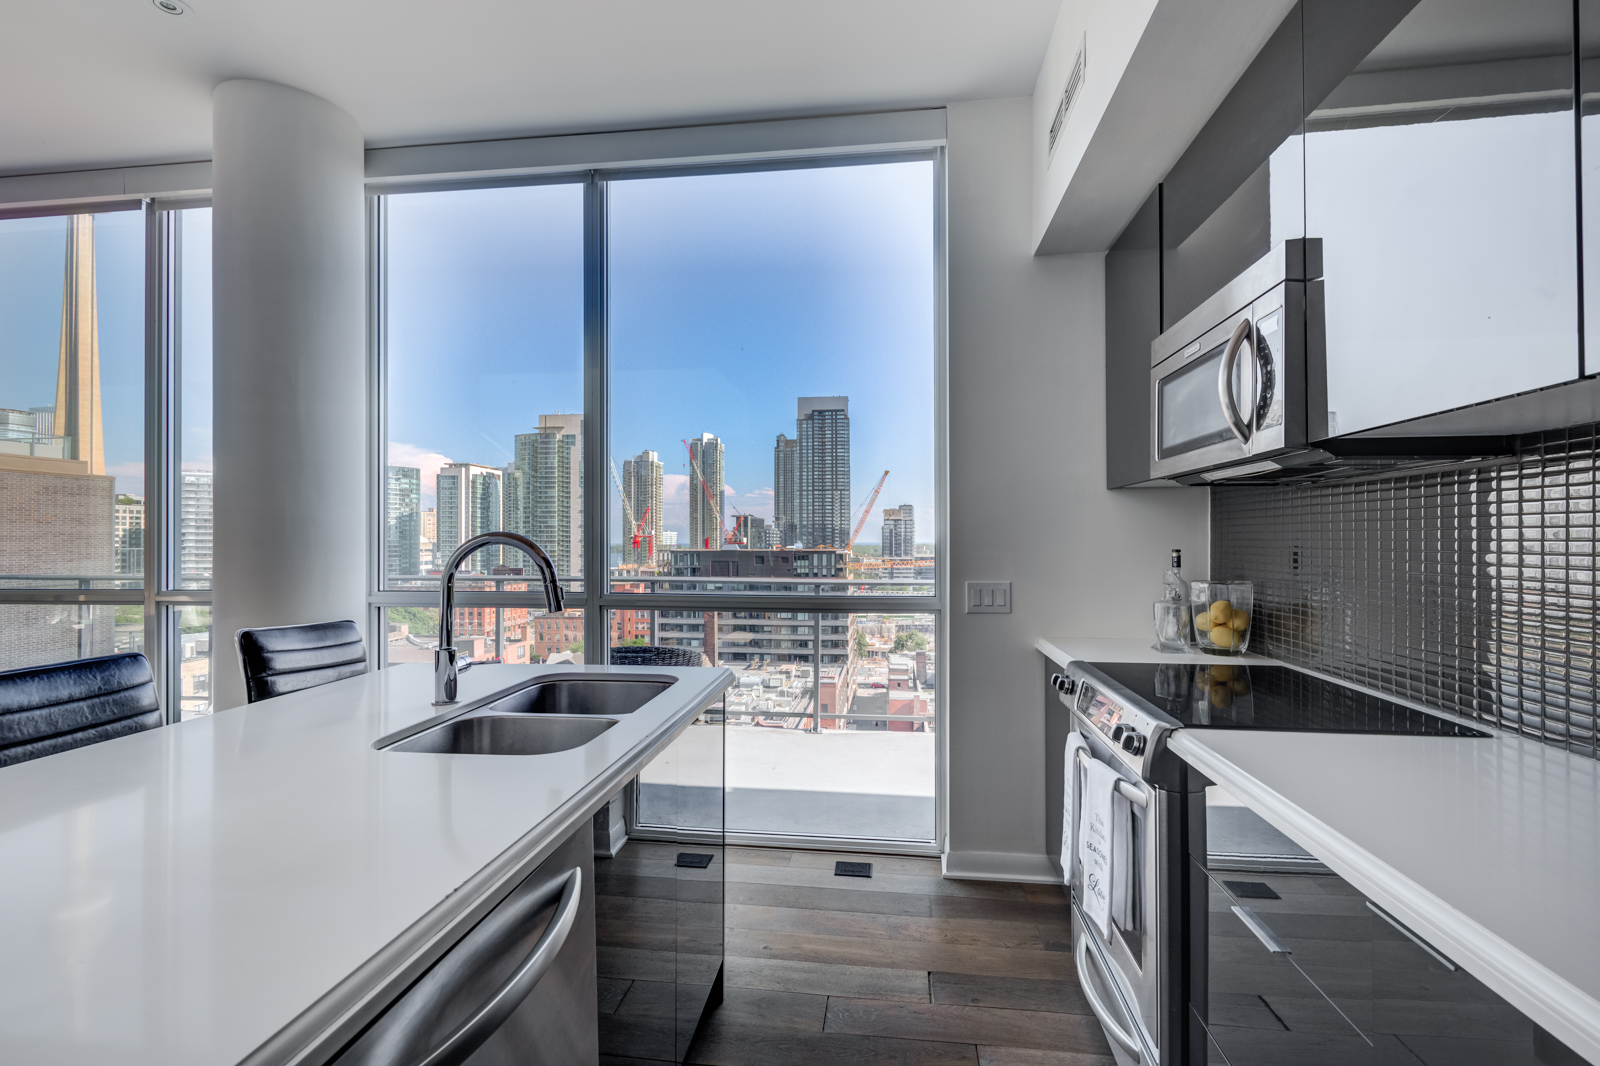 View of Toronto from kitchen windows of Victory Lofts Penthouse Suite in 478 King St.